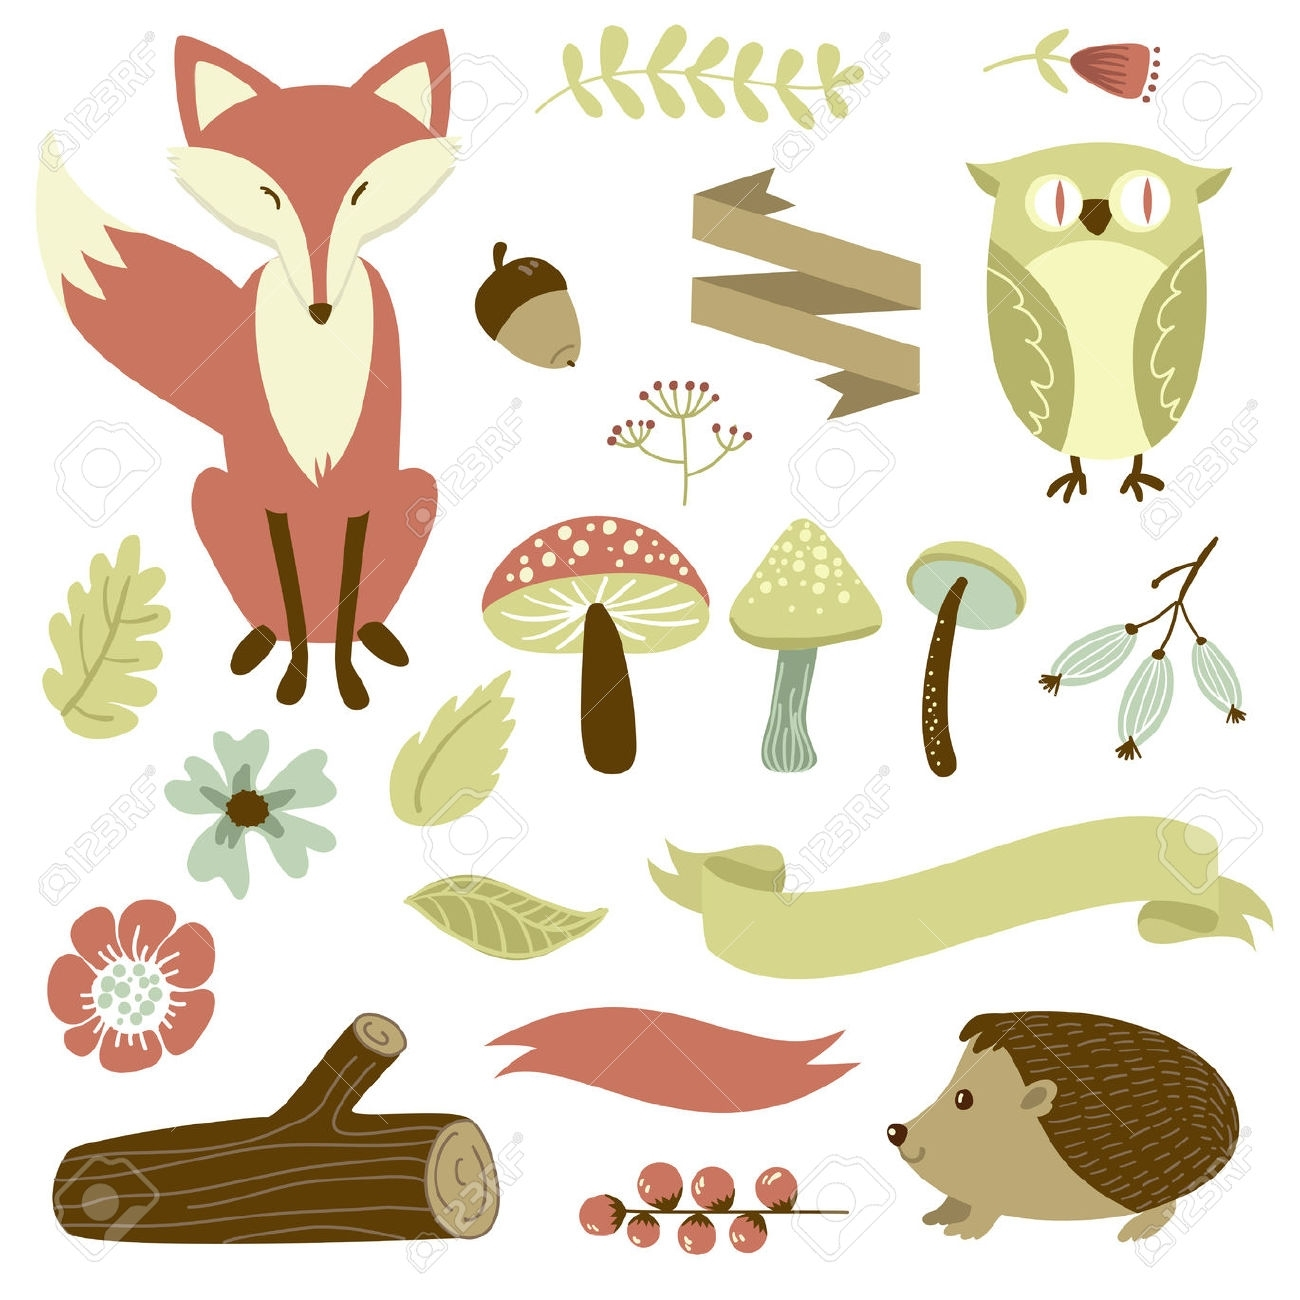 Free Printable Forest Animal Silhouettes – Google Search Pertaining To 2017 Fabric Animal Silhouette Wall Art (Gallery 14 of 15)